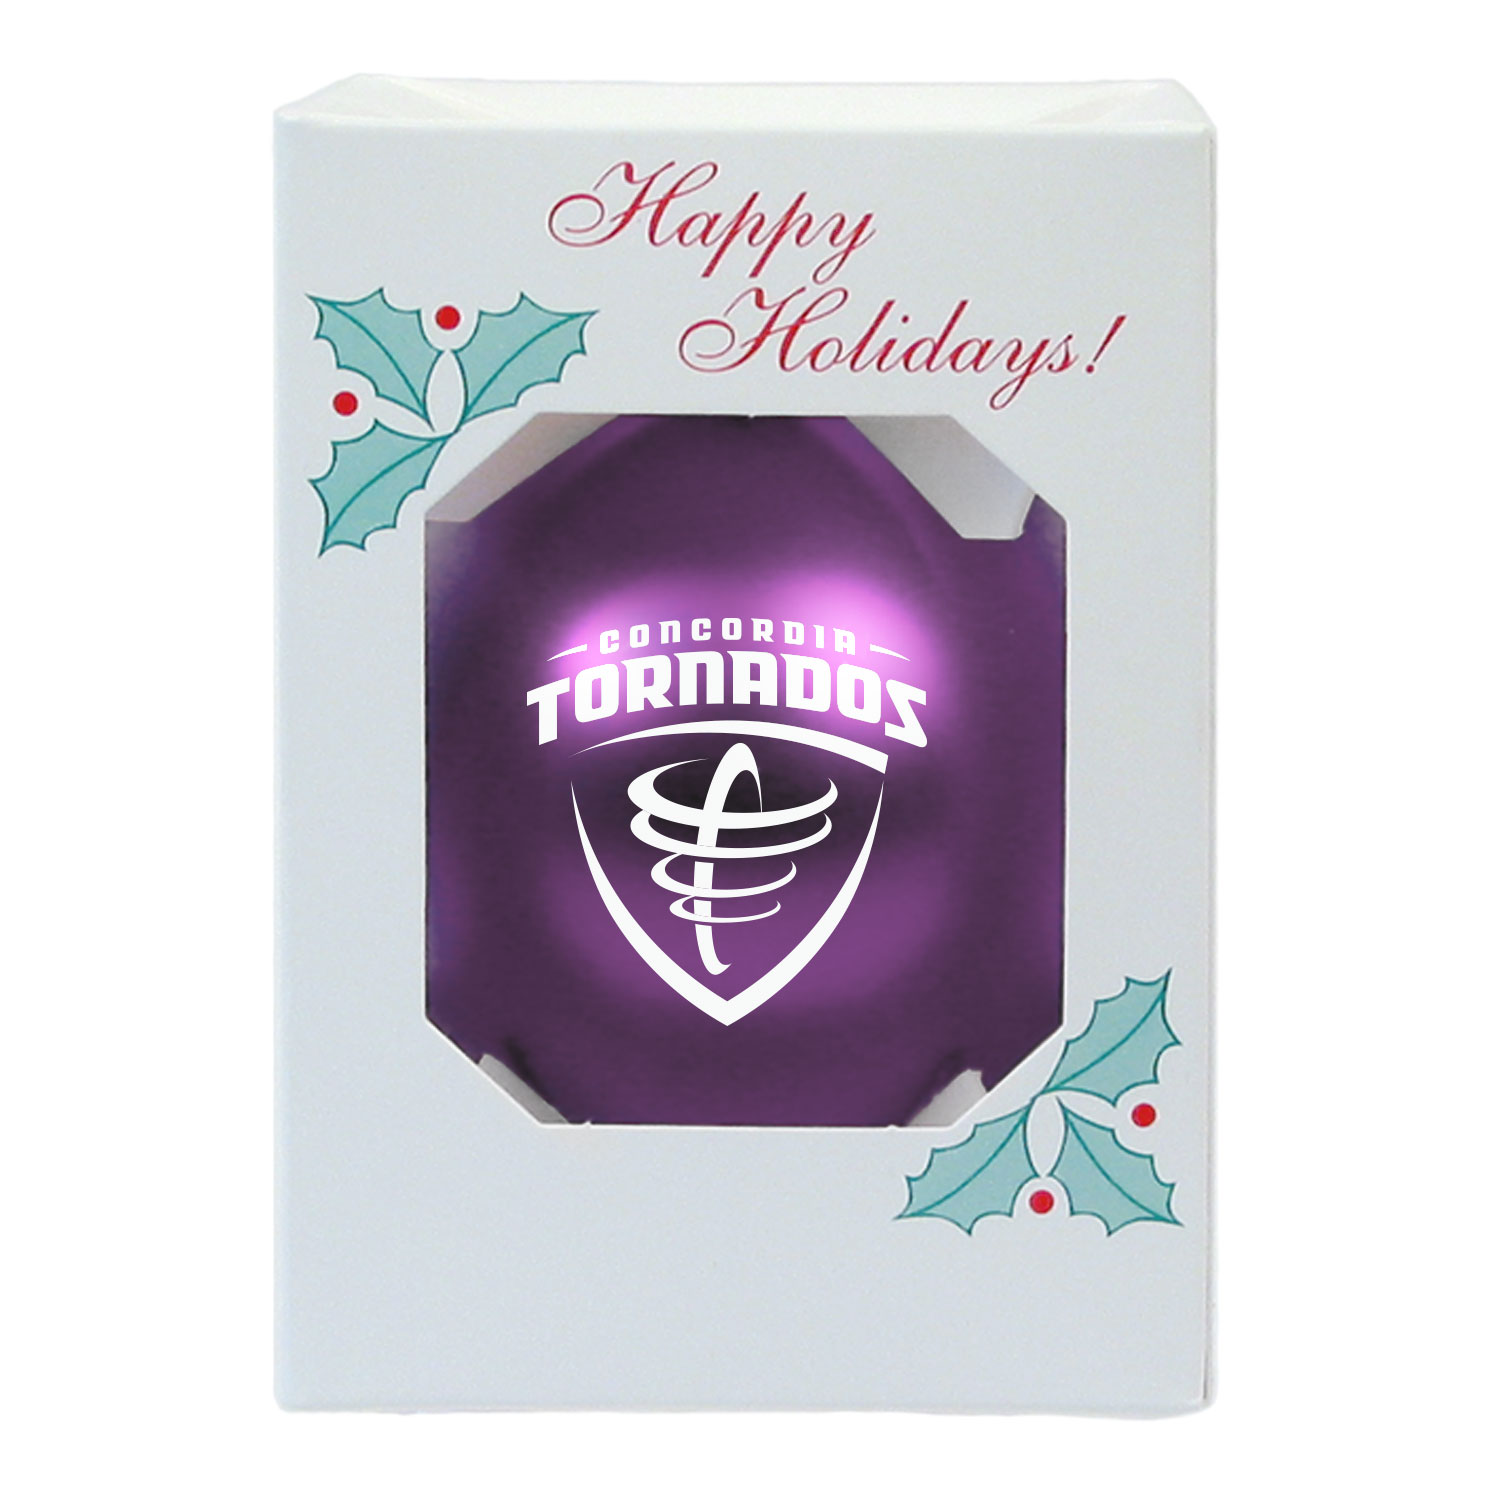 Tornados Shatterproof Ornament - Purple